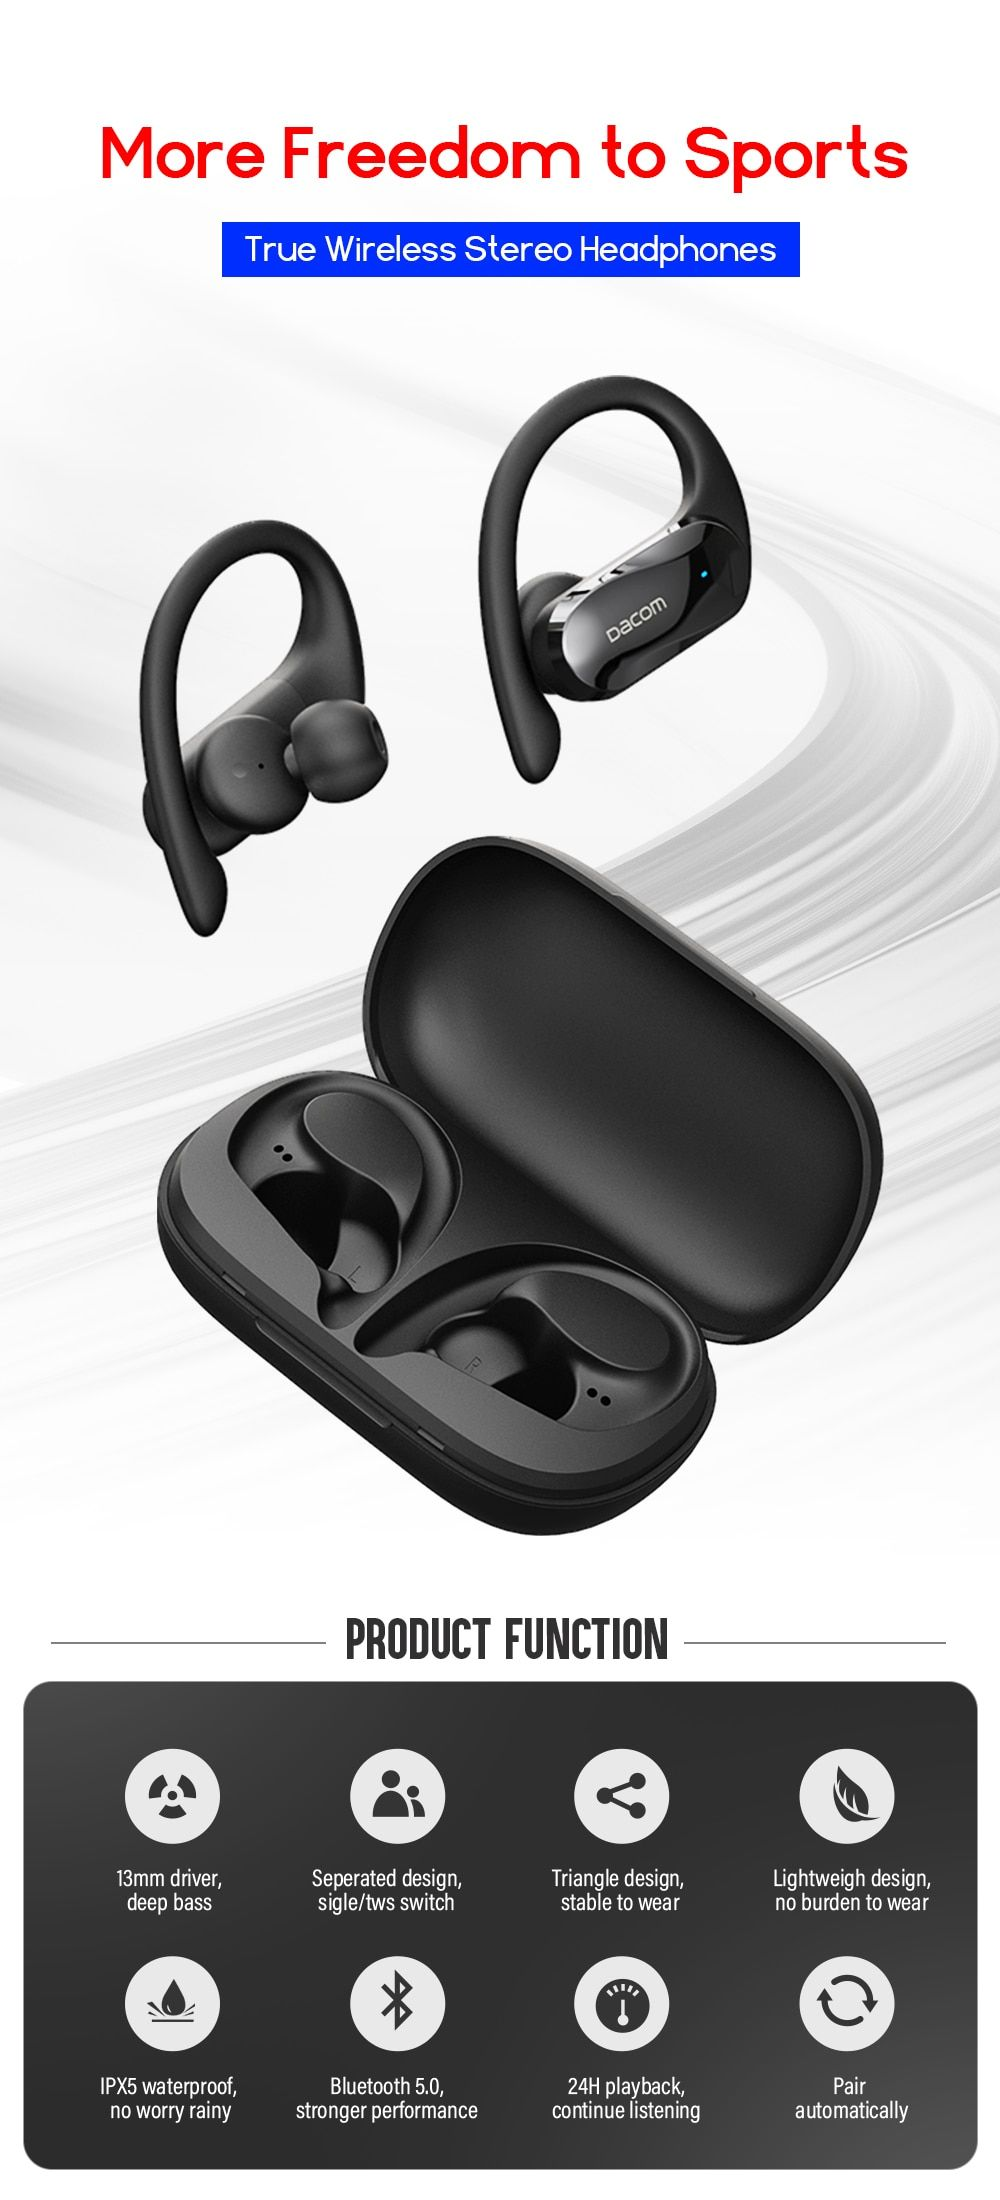 Dacom G05 Tws Bluetooth Earphones Bass True Wireless Stereo Earbuds Sports Headphone Ear Hook Running Headset For Iphone Samsung In 2020 Sport Earbuds Sports Headphones Bluetooth Earphones